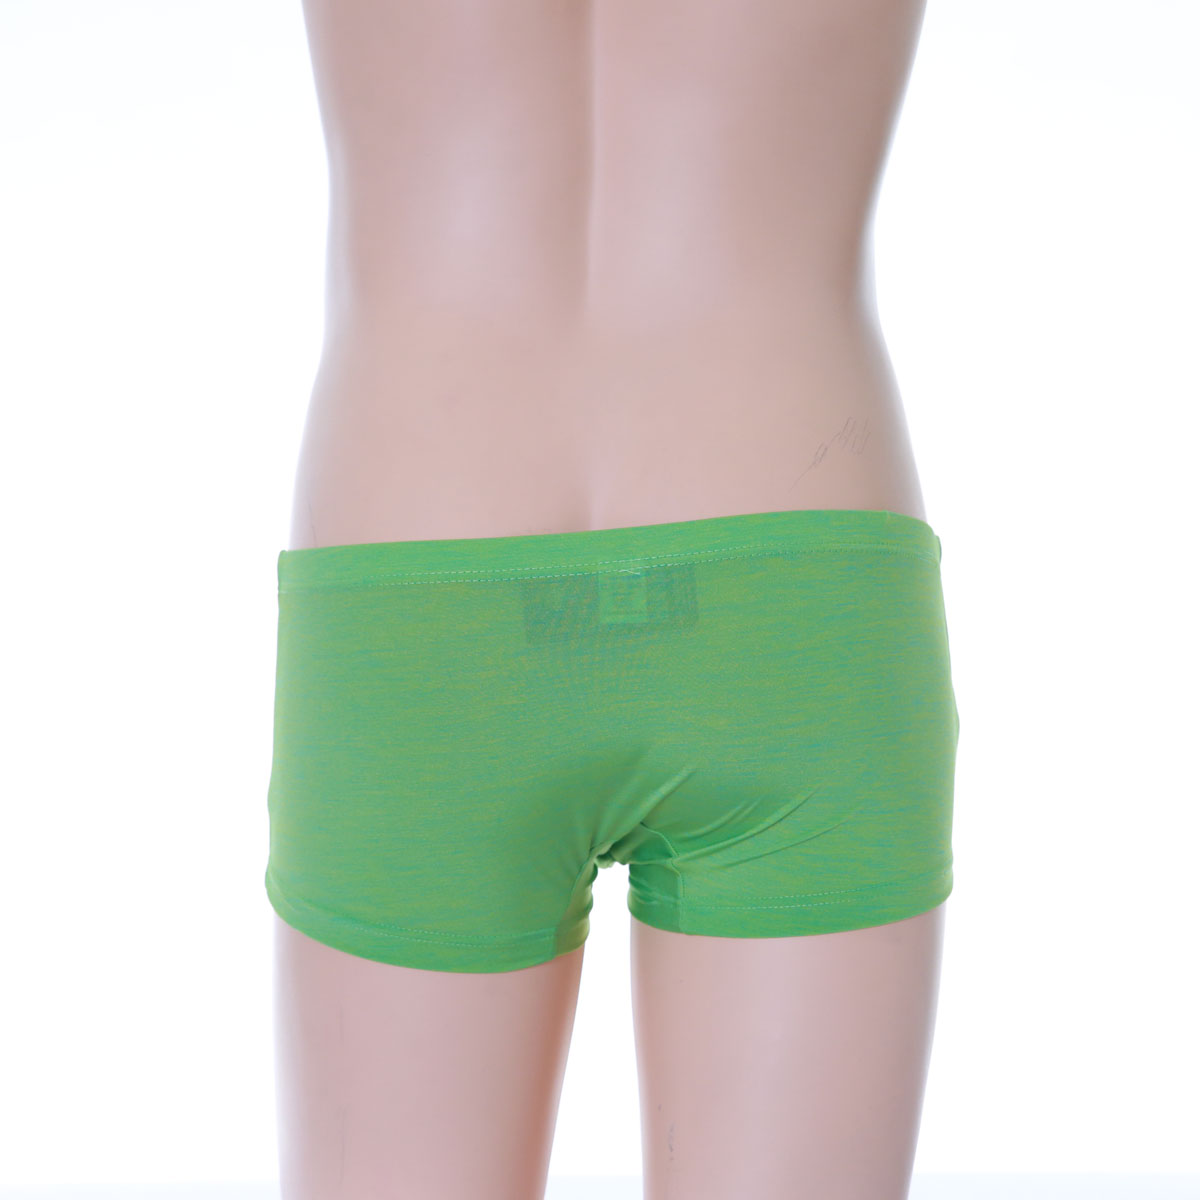 Shop and customize these funny underwear hereffil53.cf Shipping· Easy Returns· Great Customer Service· Group DiscountsTypes: Apparel For Men, Apparel For Women, Kids Apparel, Accessories.